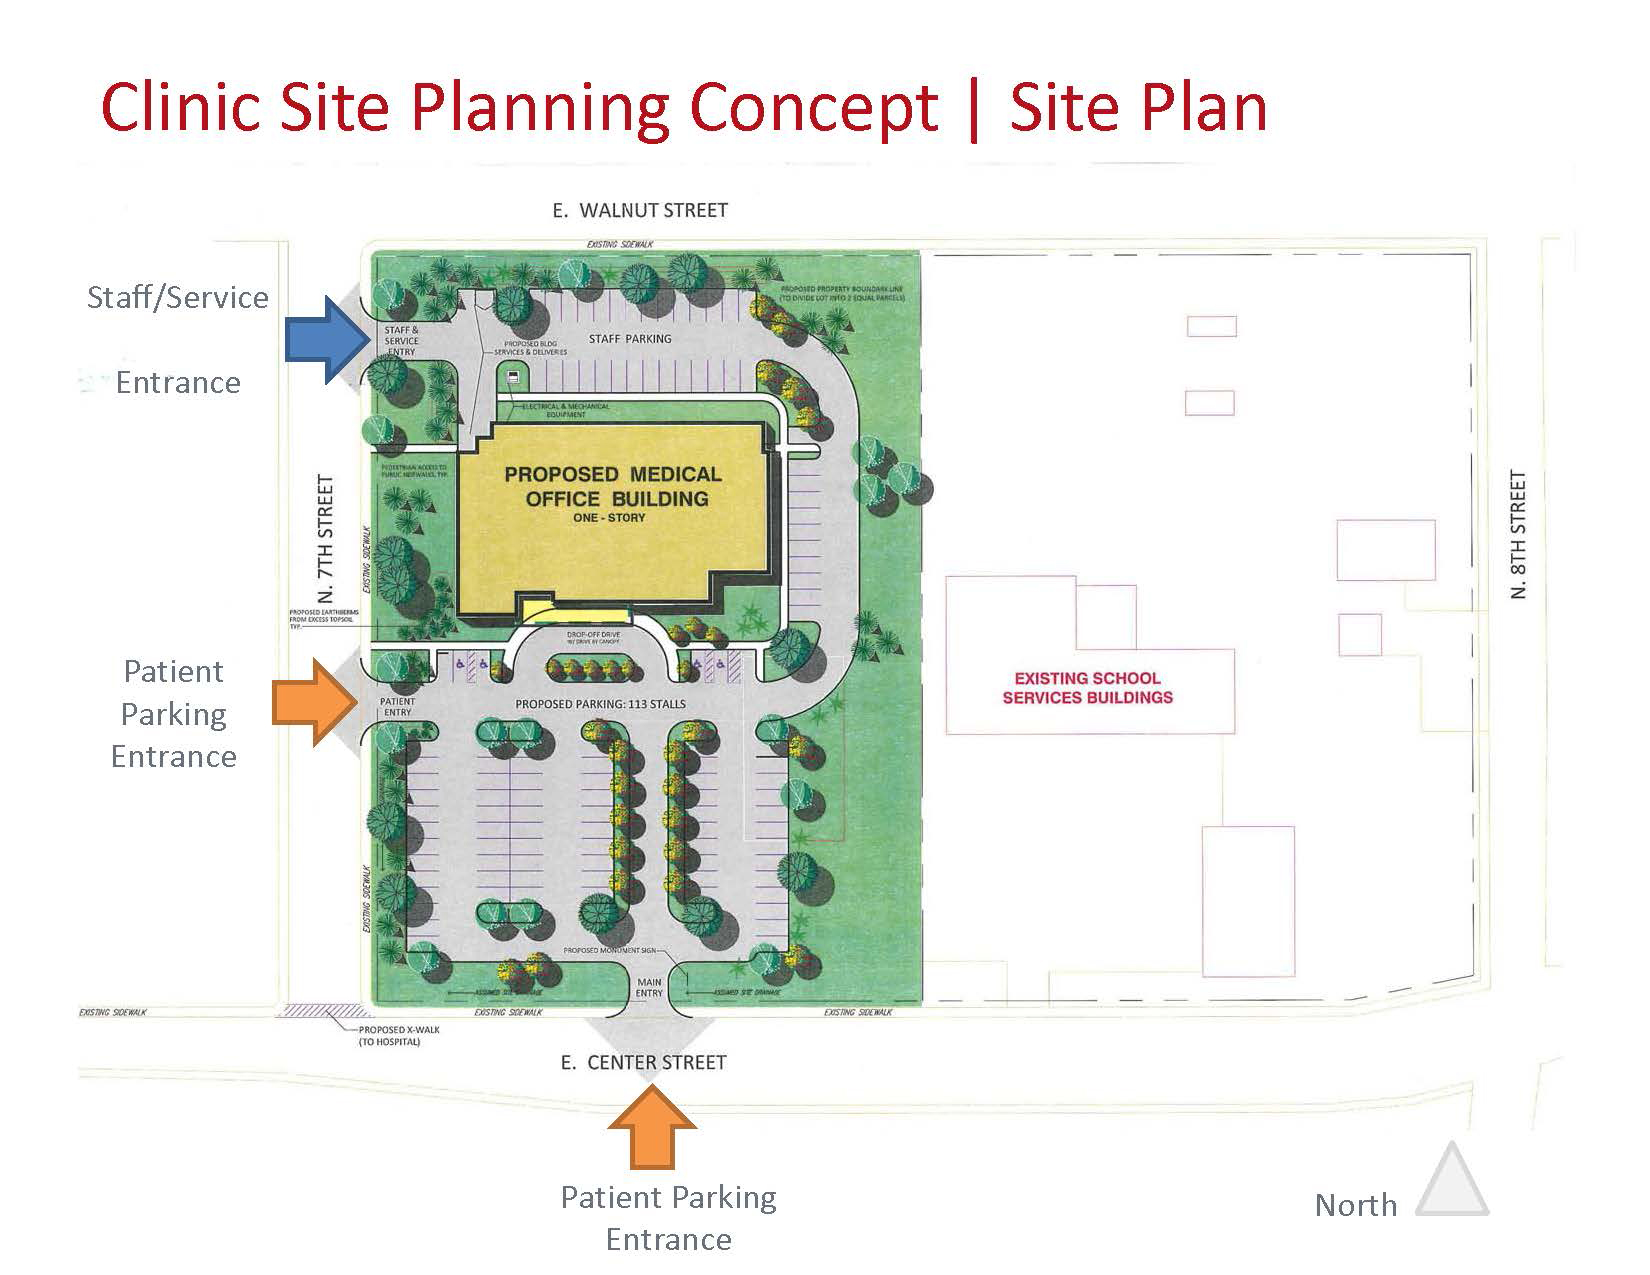 Memorial hospital selects building site memorial for Building site plans